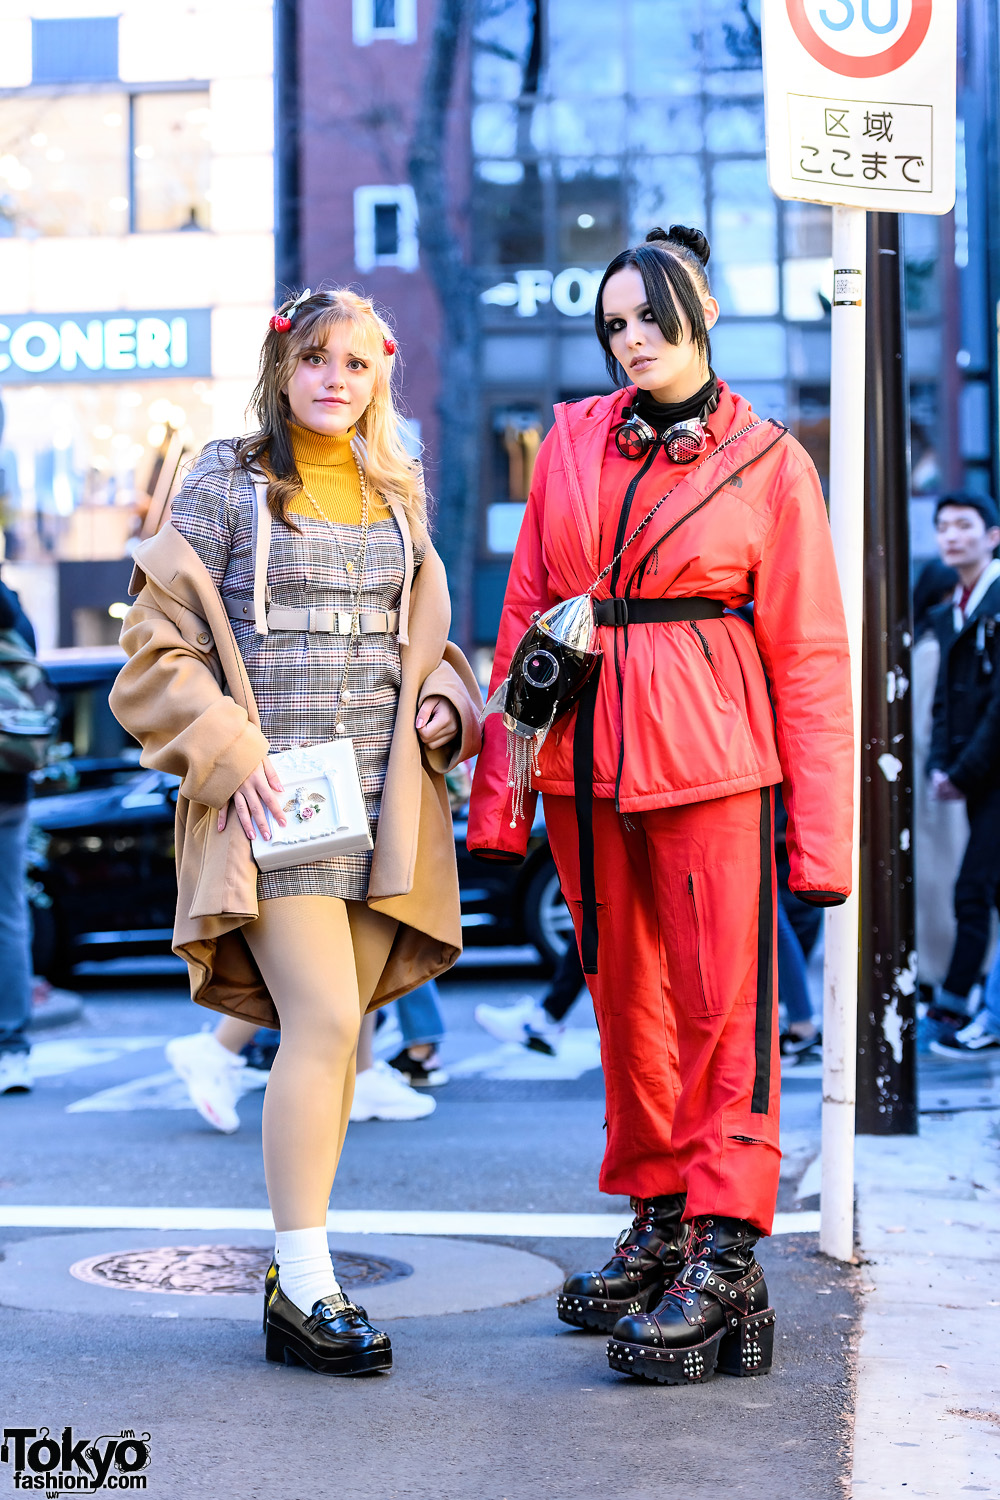 Harajuku Styles w/ Goggles, Rocket Space & Cherub Chain Sling Bags, Forever21 Houndstooth Dress, The North Face Puffer Jacket, I.Am.Gia & Out Of The World Boots